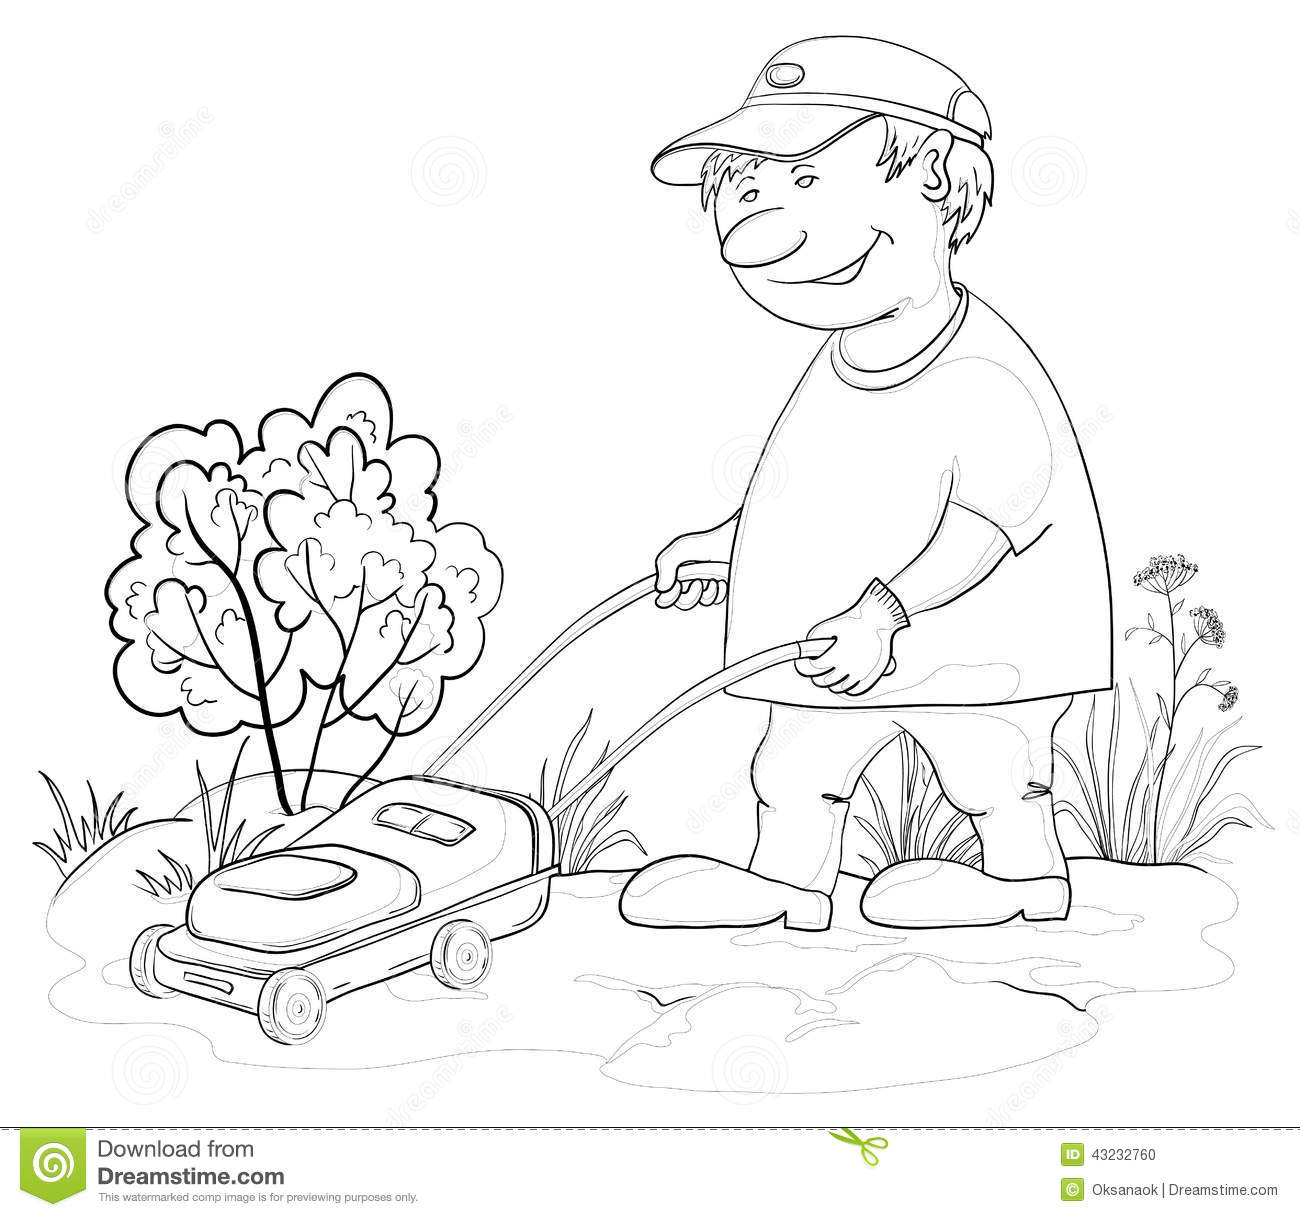 0511 1104 0222 5055 as well Cartoon Tractor Driver 437958 together with Zero turn mowers clipart further  furthermore Lawn Mower Clipart 4939. on riding lawn mower cartoon